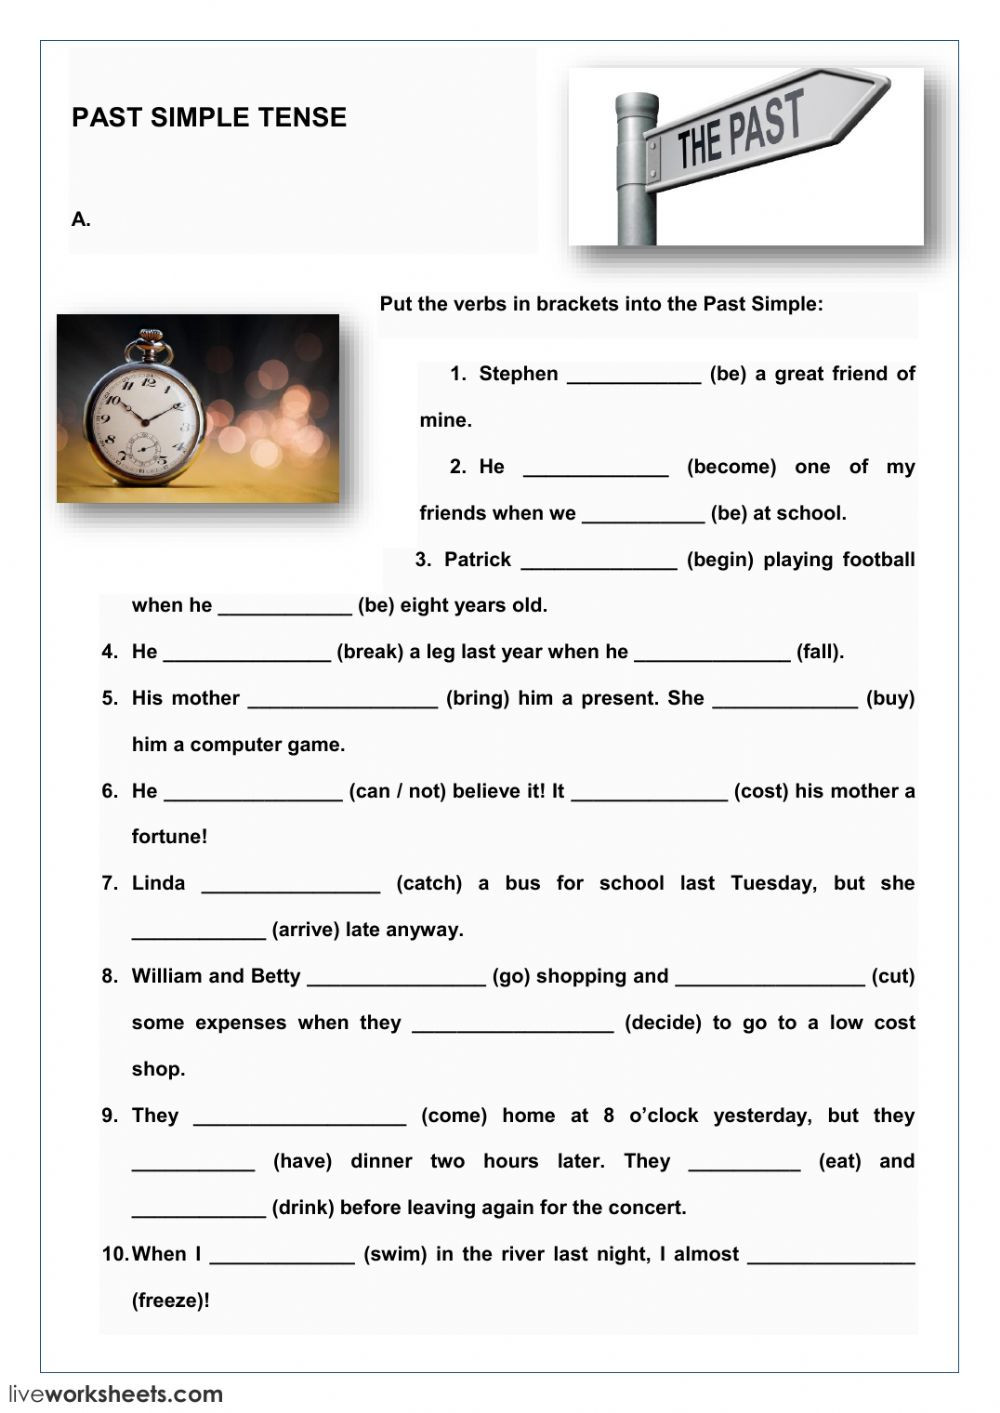 Tenses Worksheets for Grade 5 Past Simple Tense Interactive Worksheet